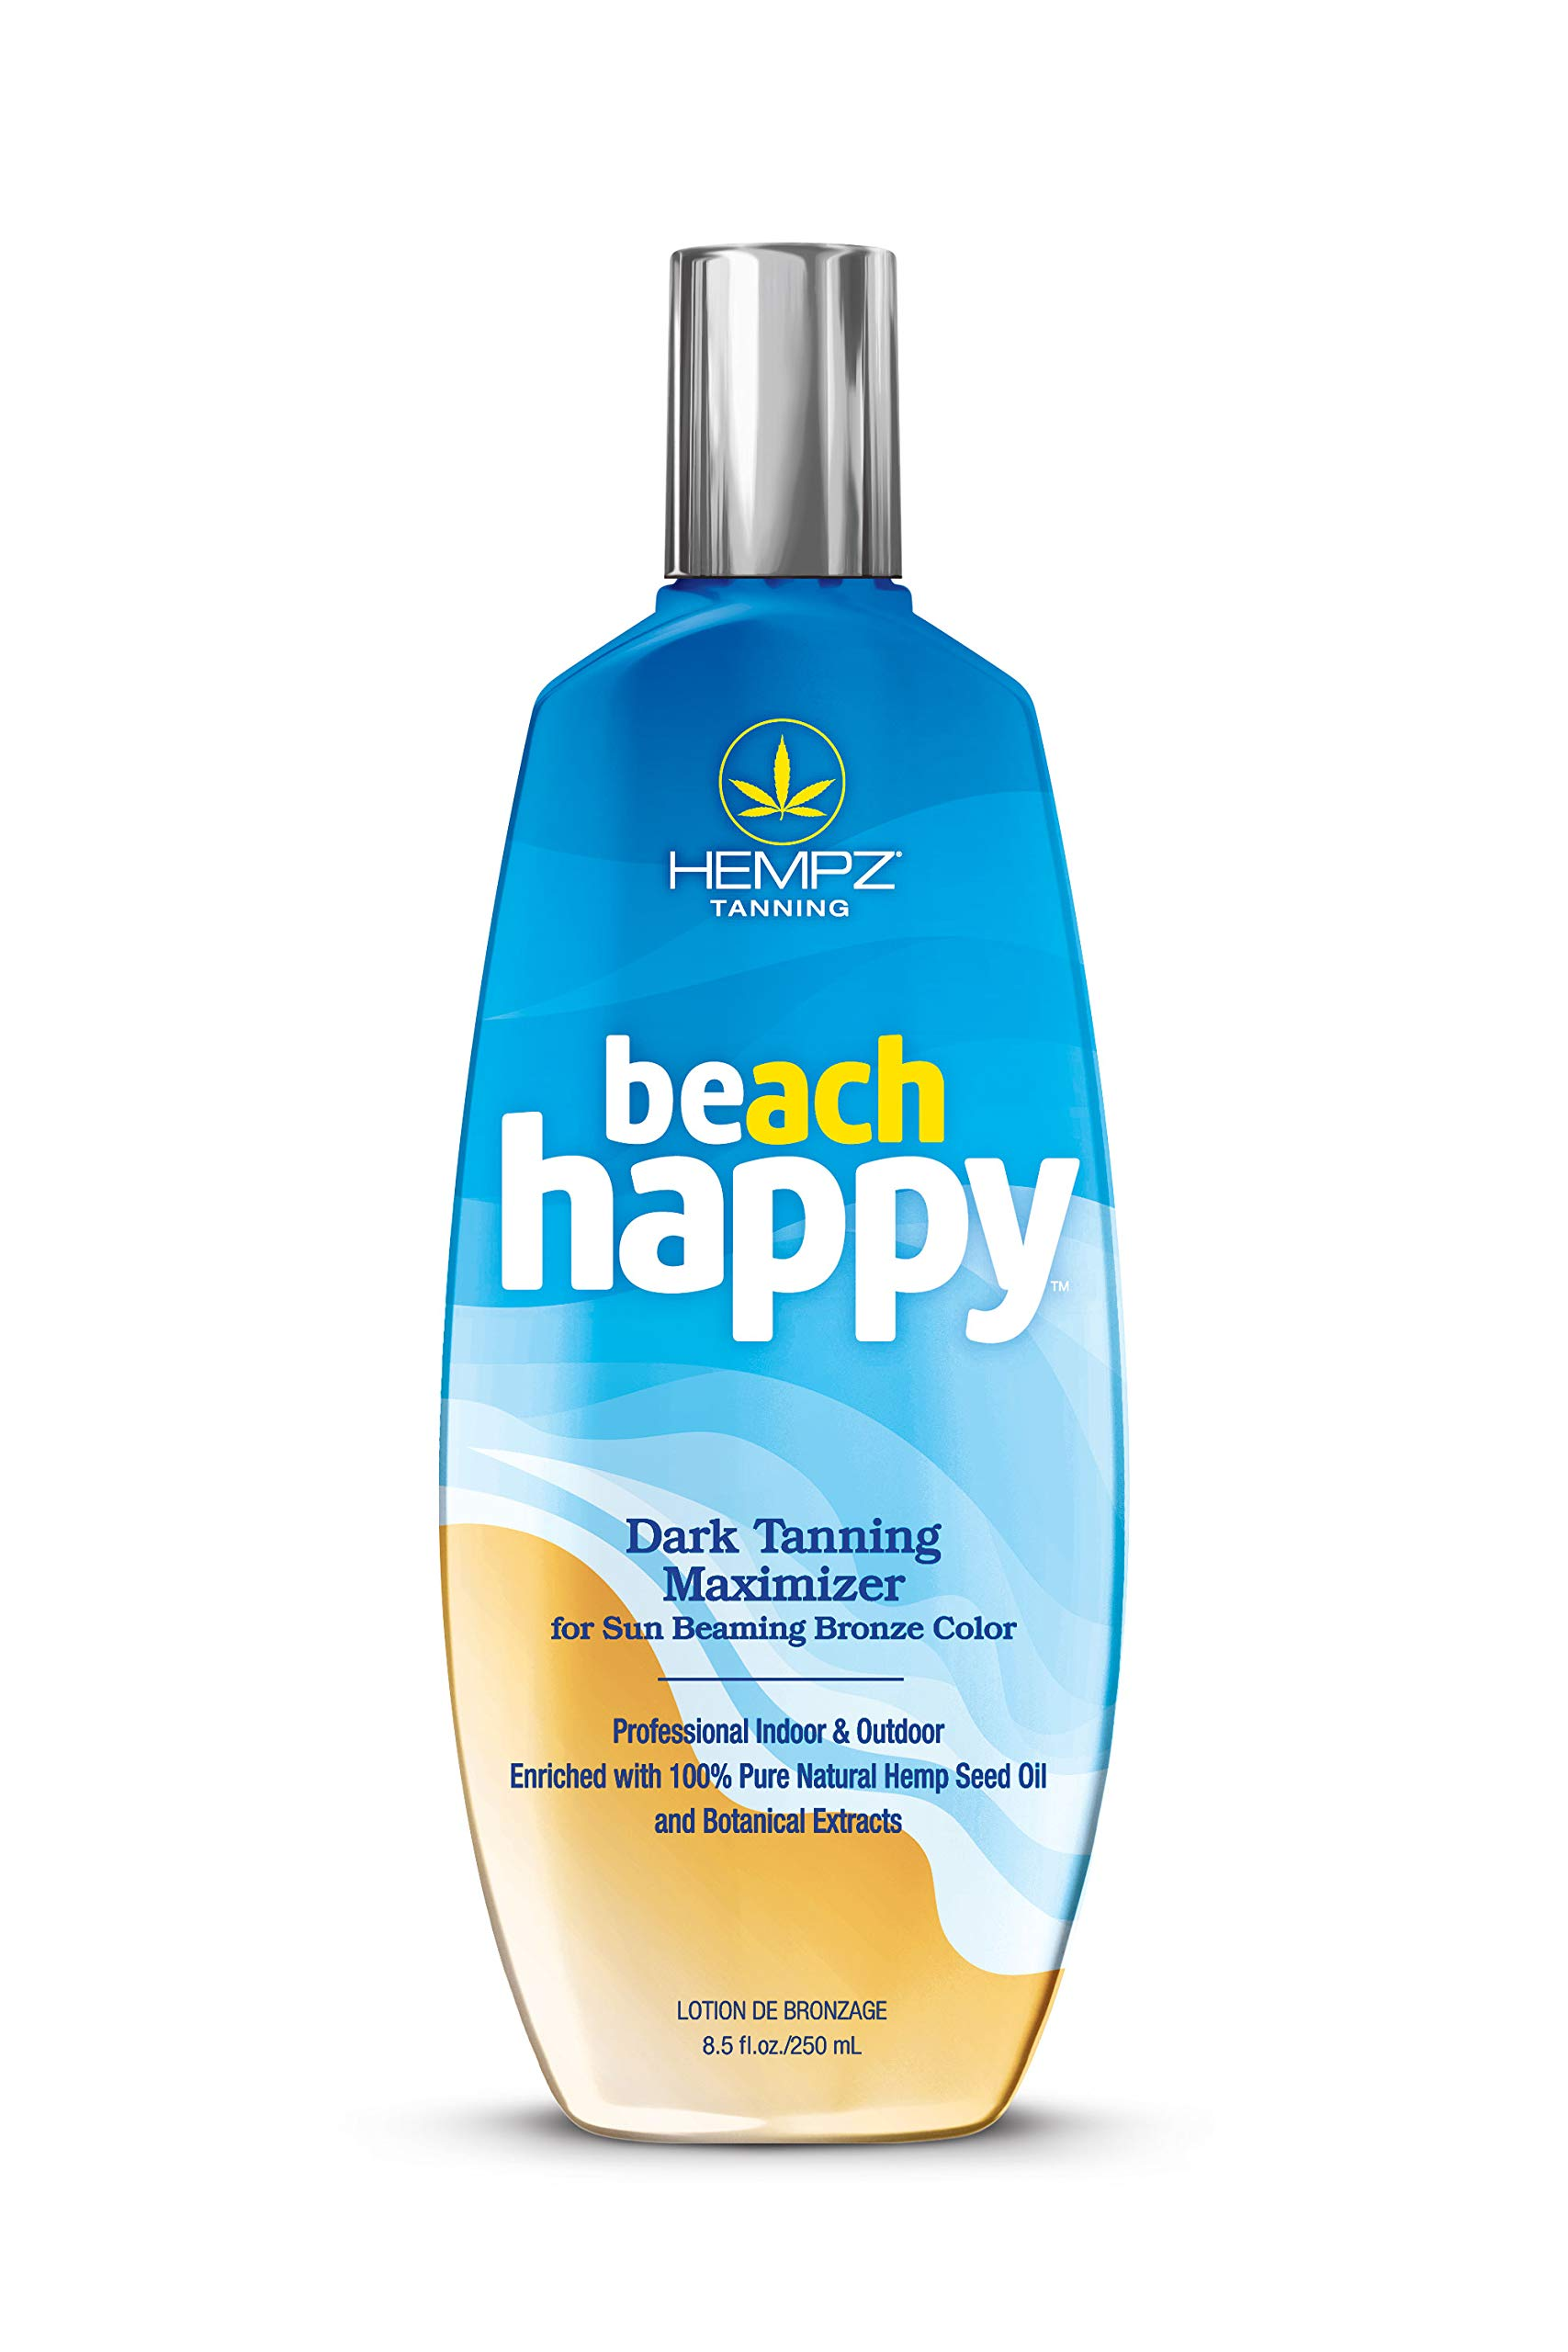 Hempz Beach Happy Dark Tanning Maximizer by Hempz